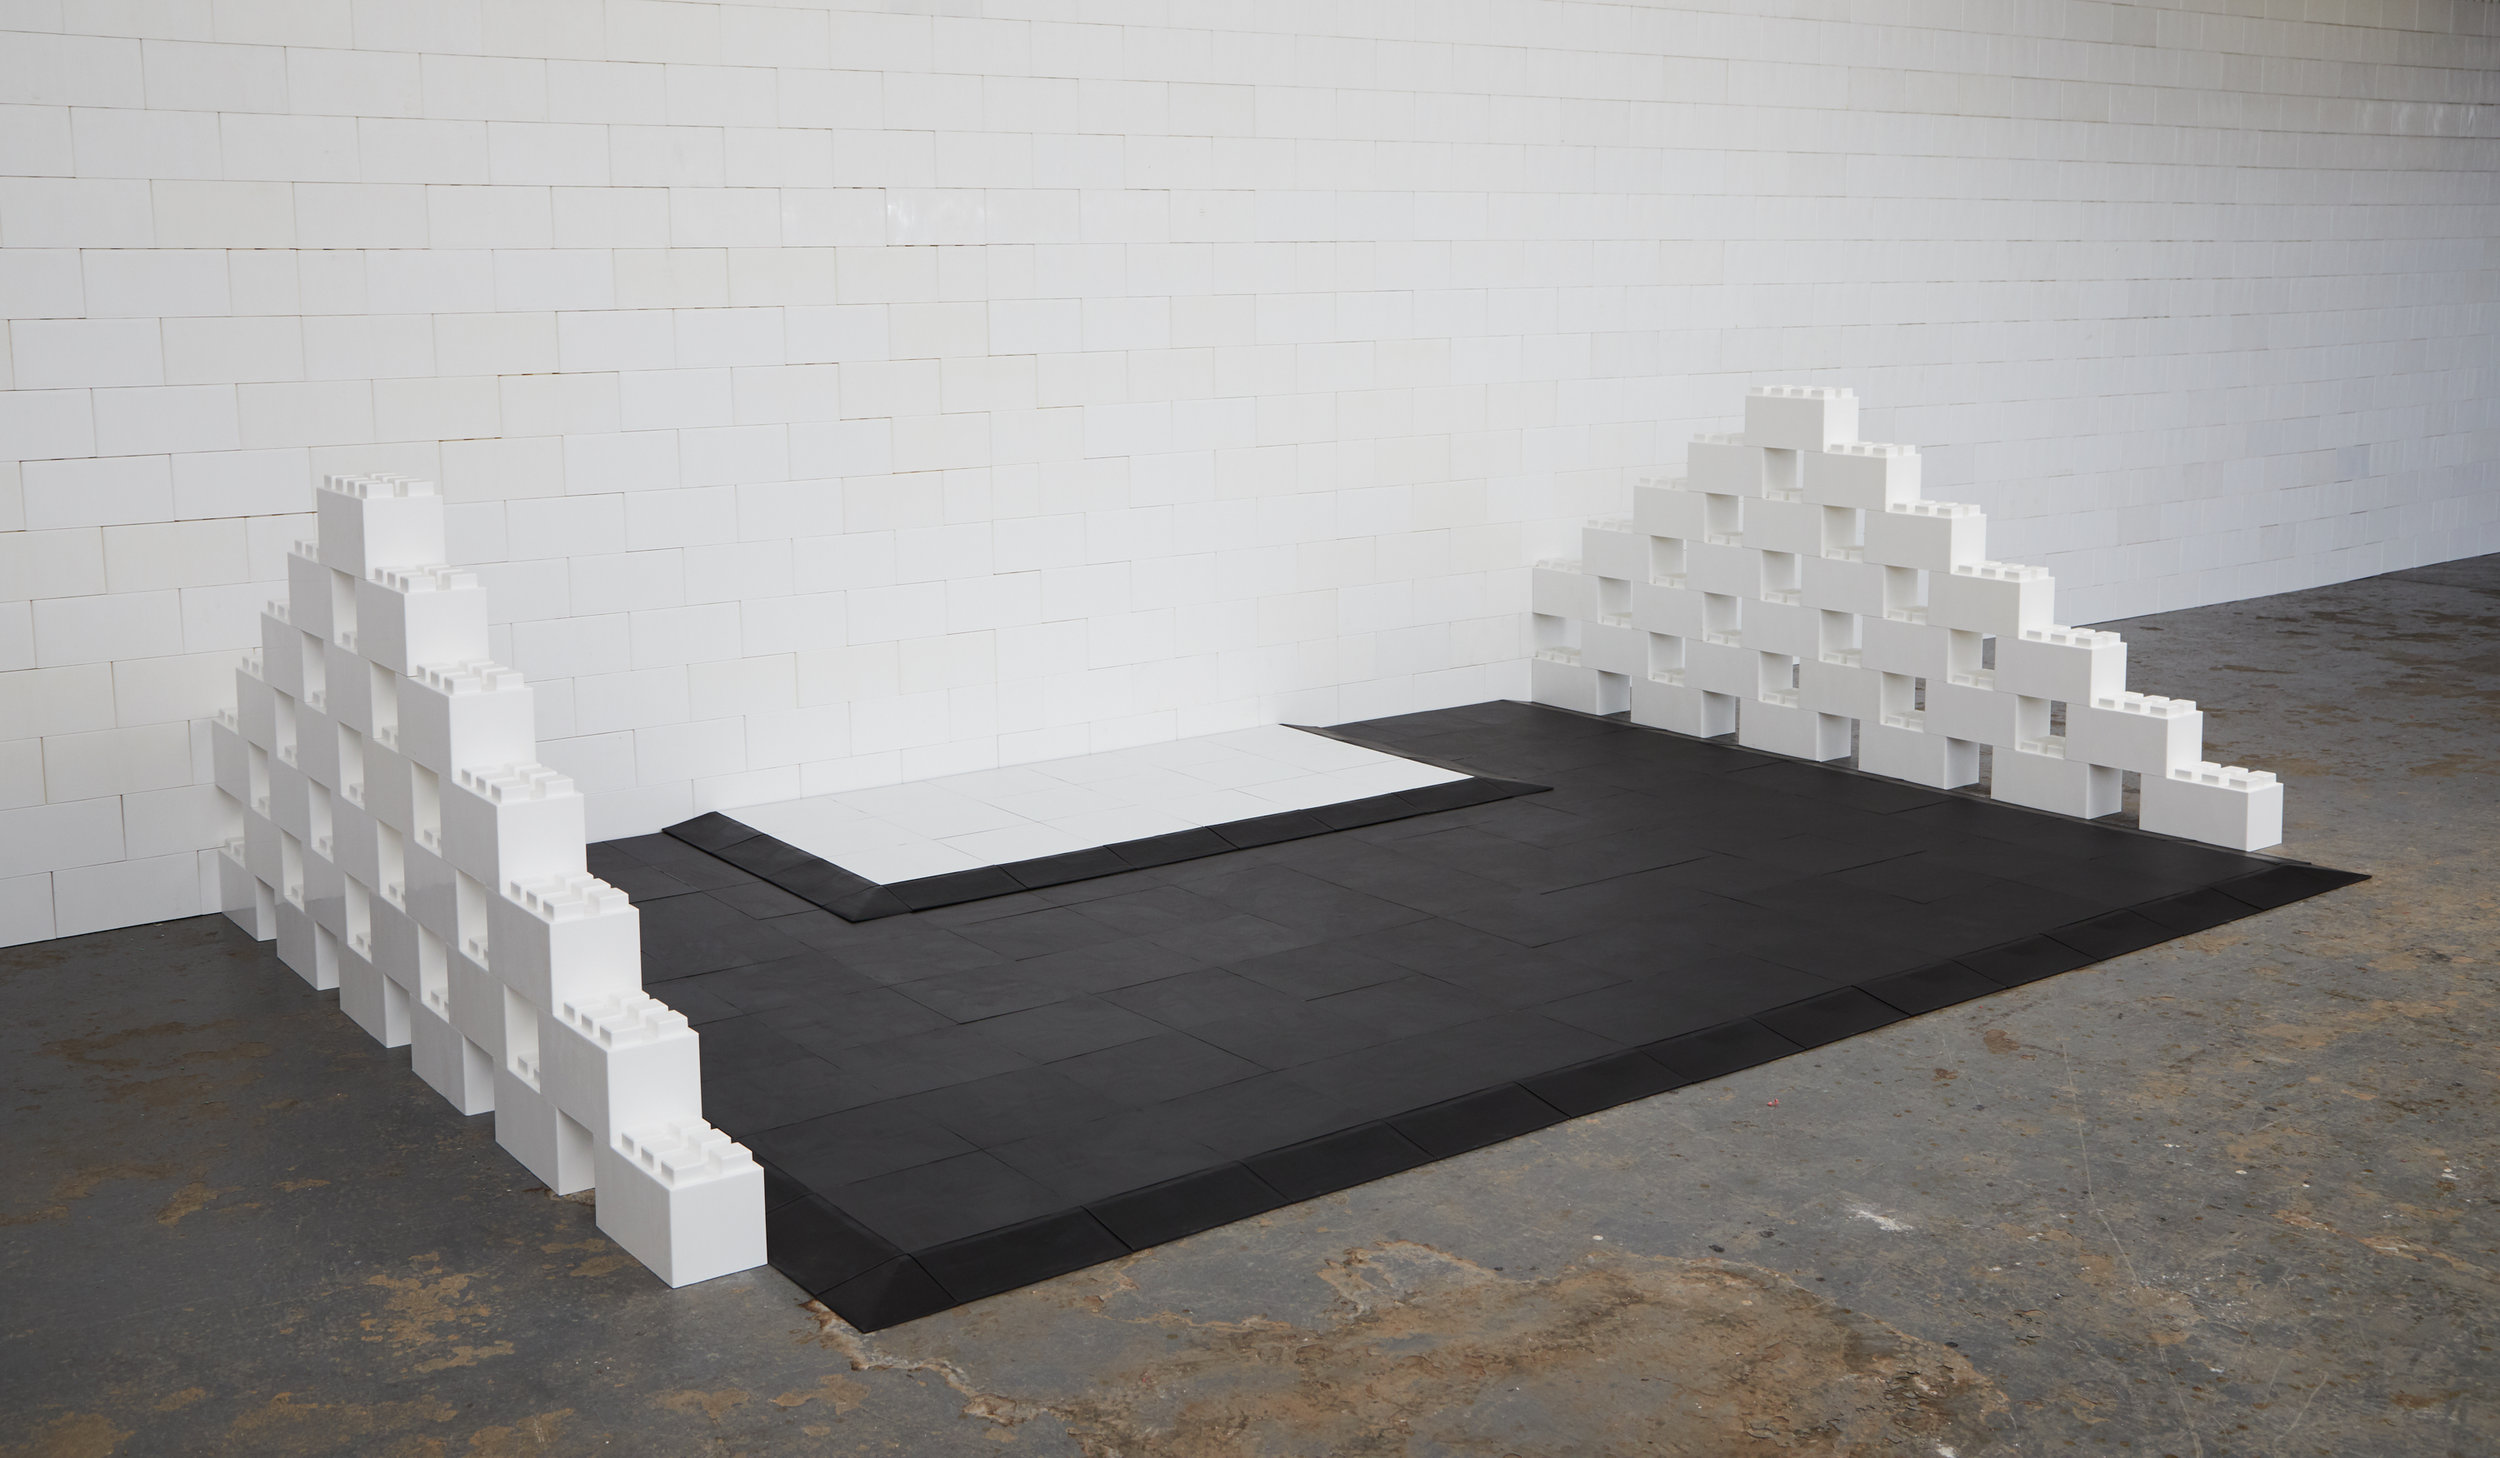 EverBlock flooring works seamlessly with EverBlock building blocks to create the ultimate building system.